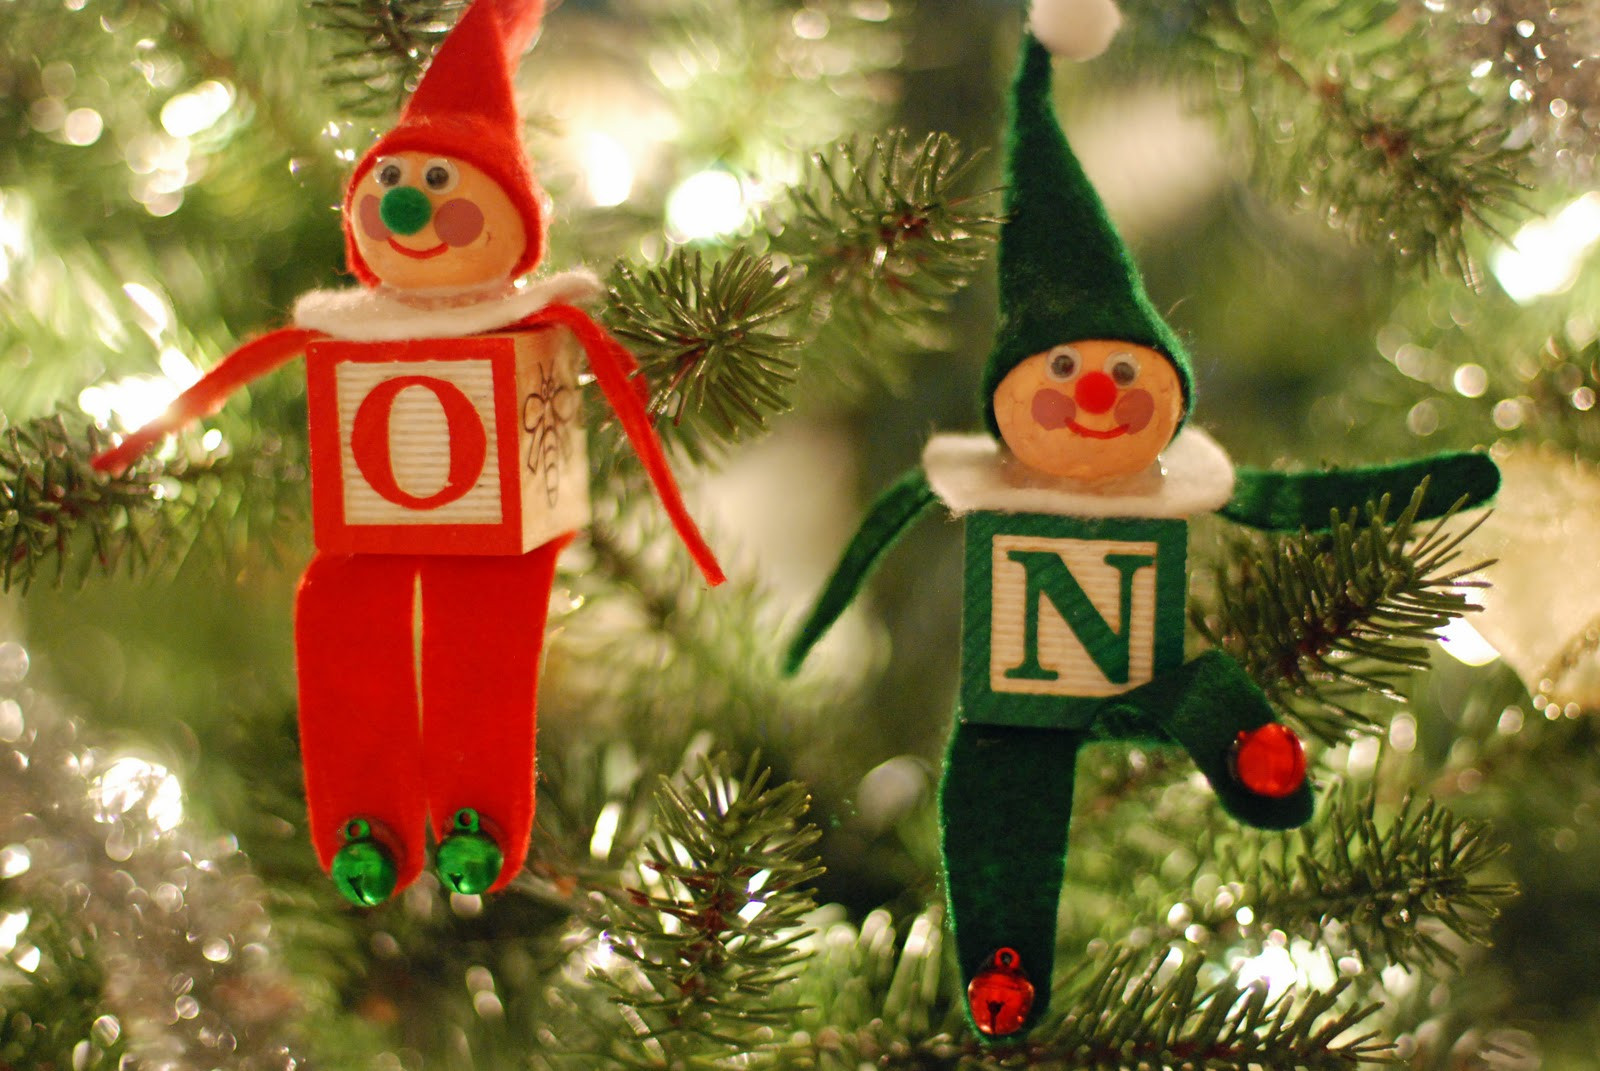 Elf Christmas Decorations Lovely that Artist Woman How to Make An Alphabet Block Elf Of Brilliant 42 Images Elf Christmas Decorations